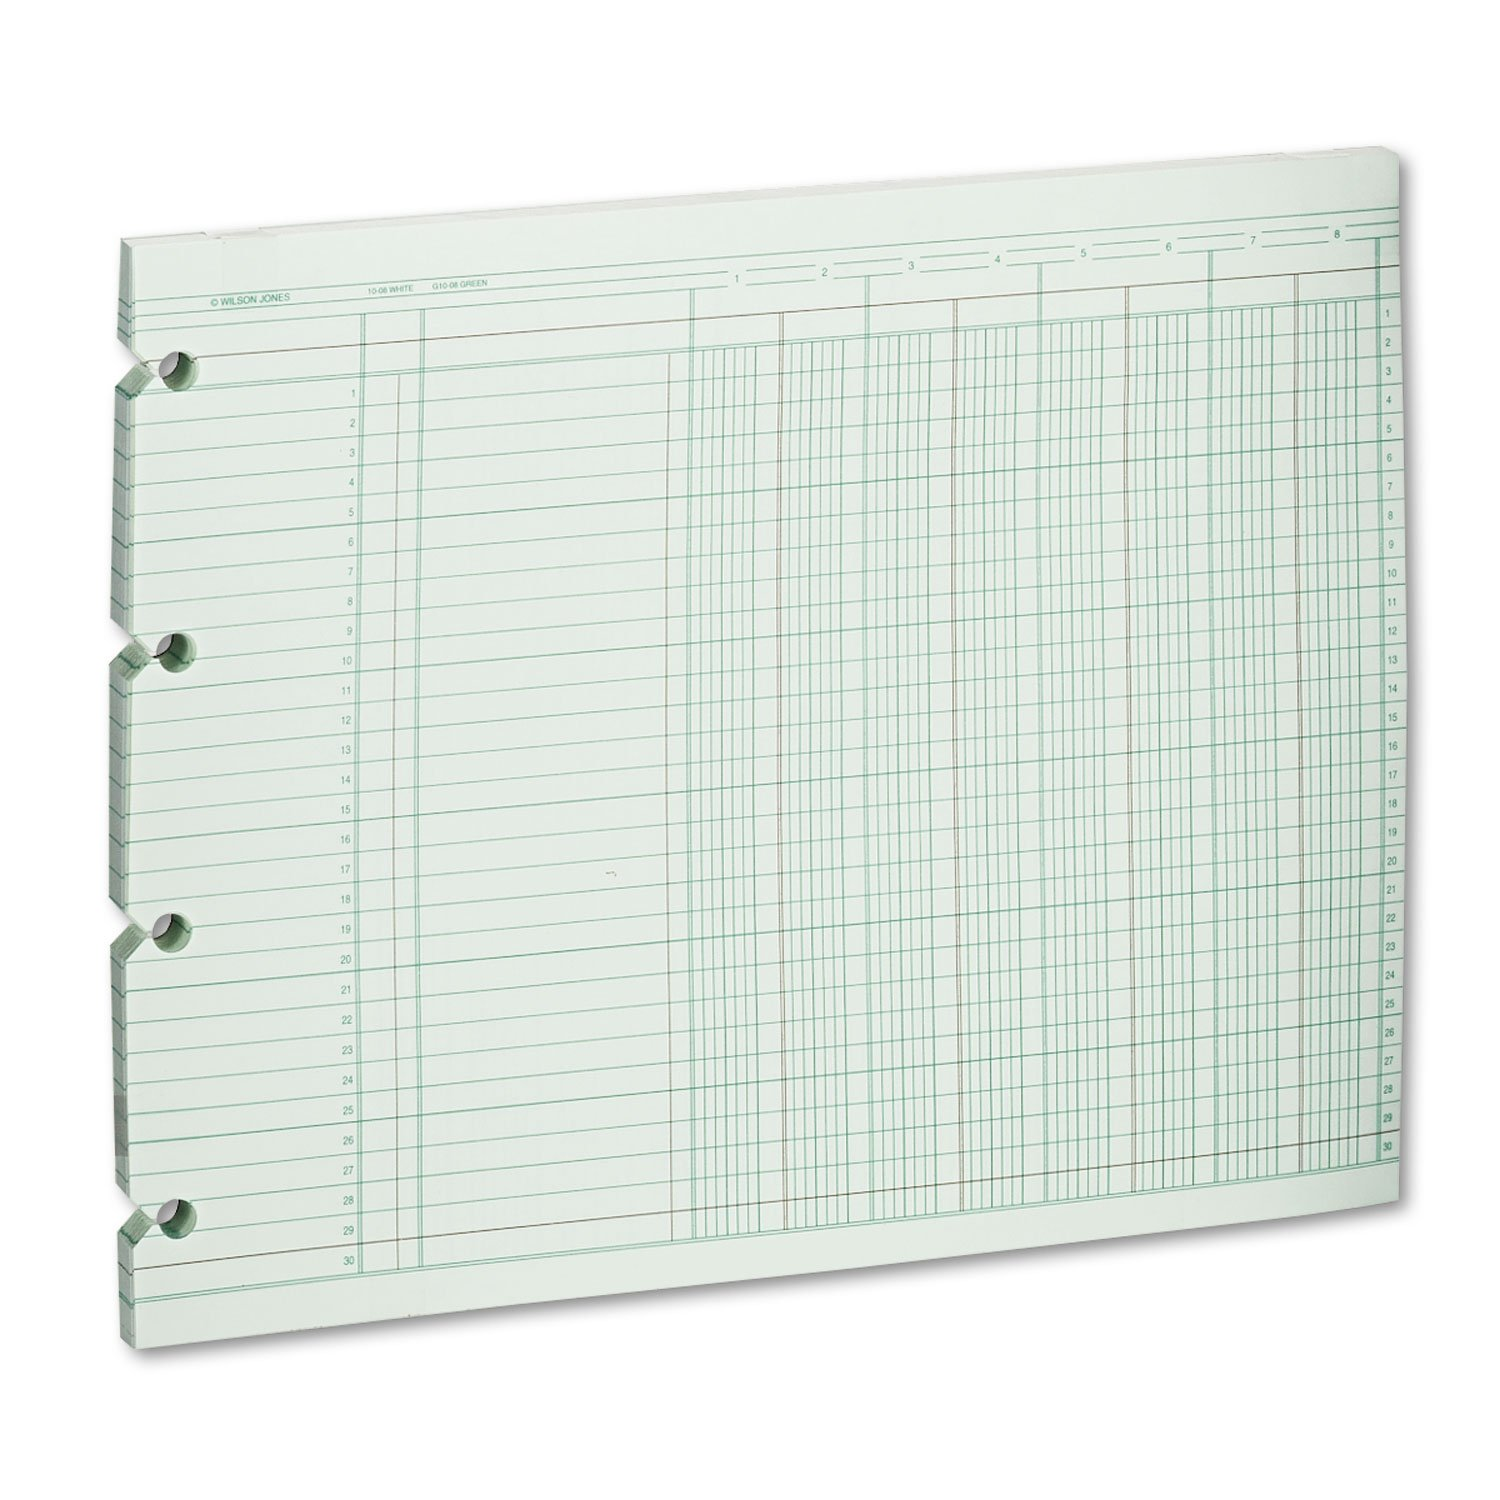 Wilson Jones G108 Accounting Sheets, Eight Column, 9-1/4 x 11-7/8, 100 Loose Sheets/Pack, Green